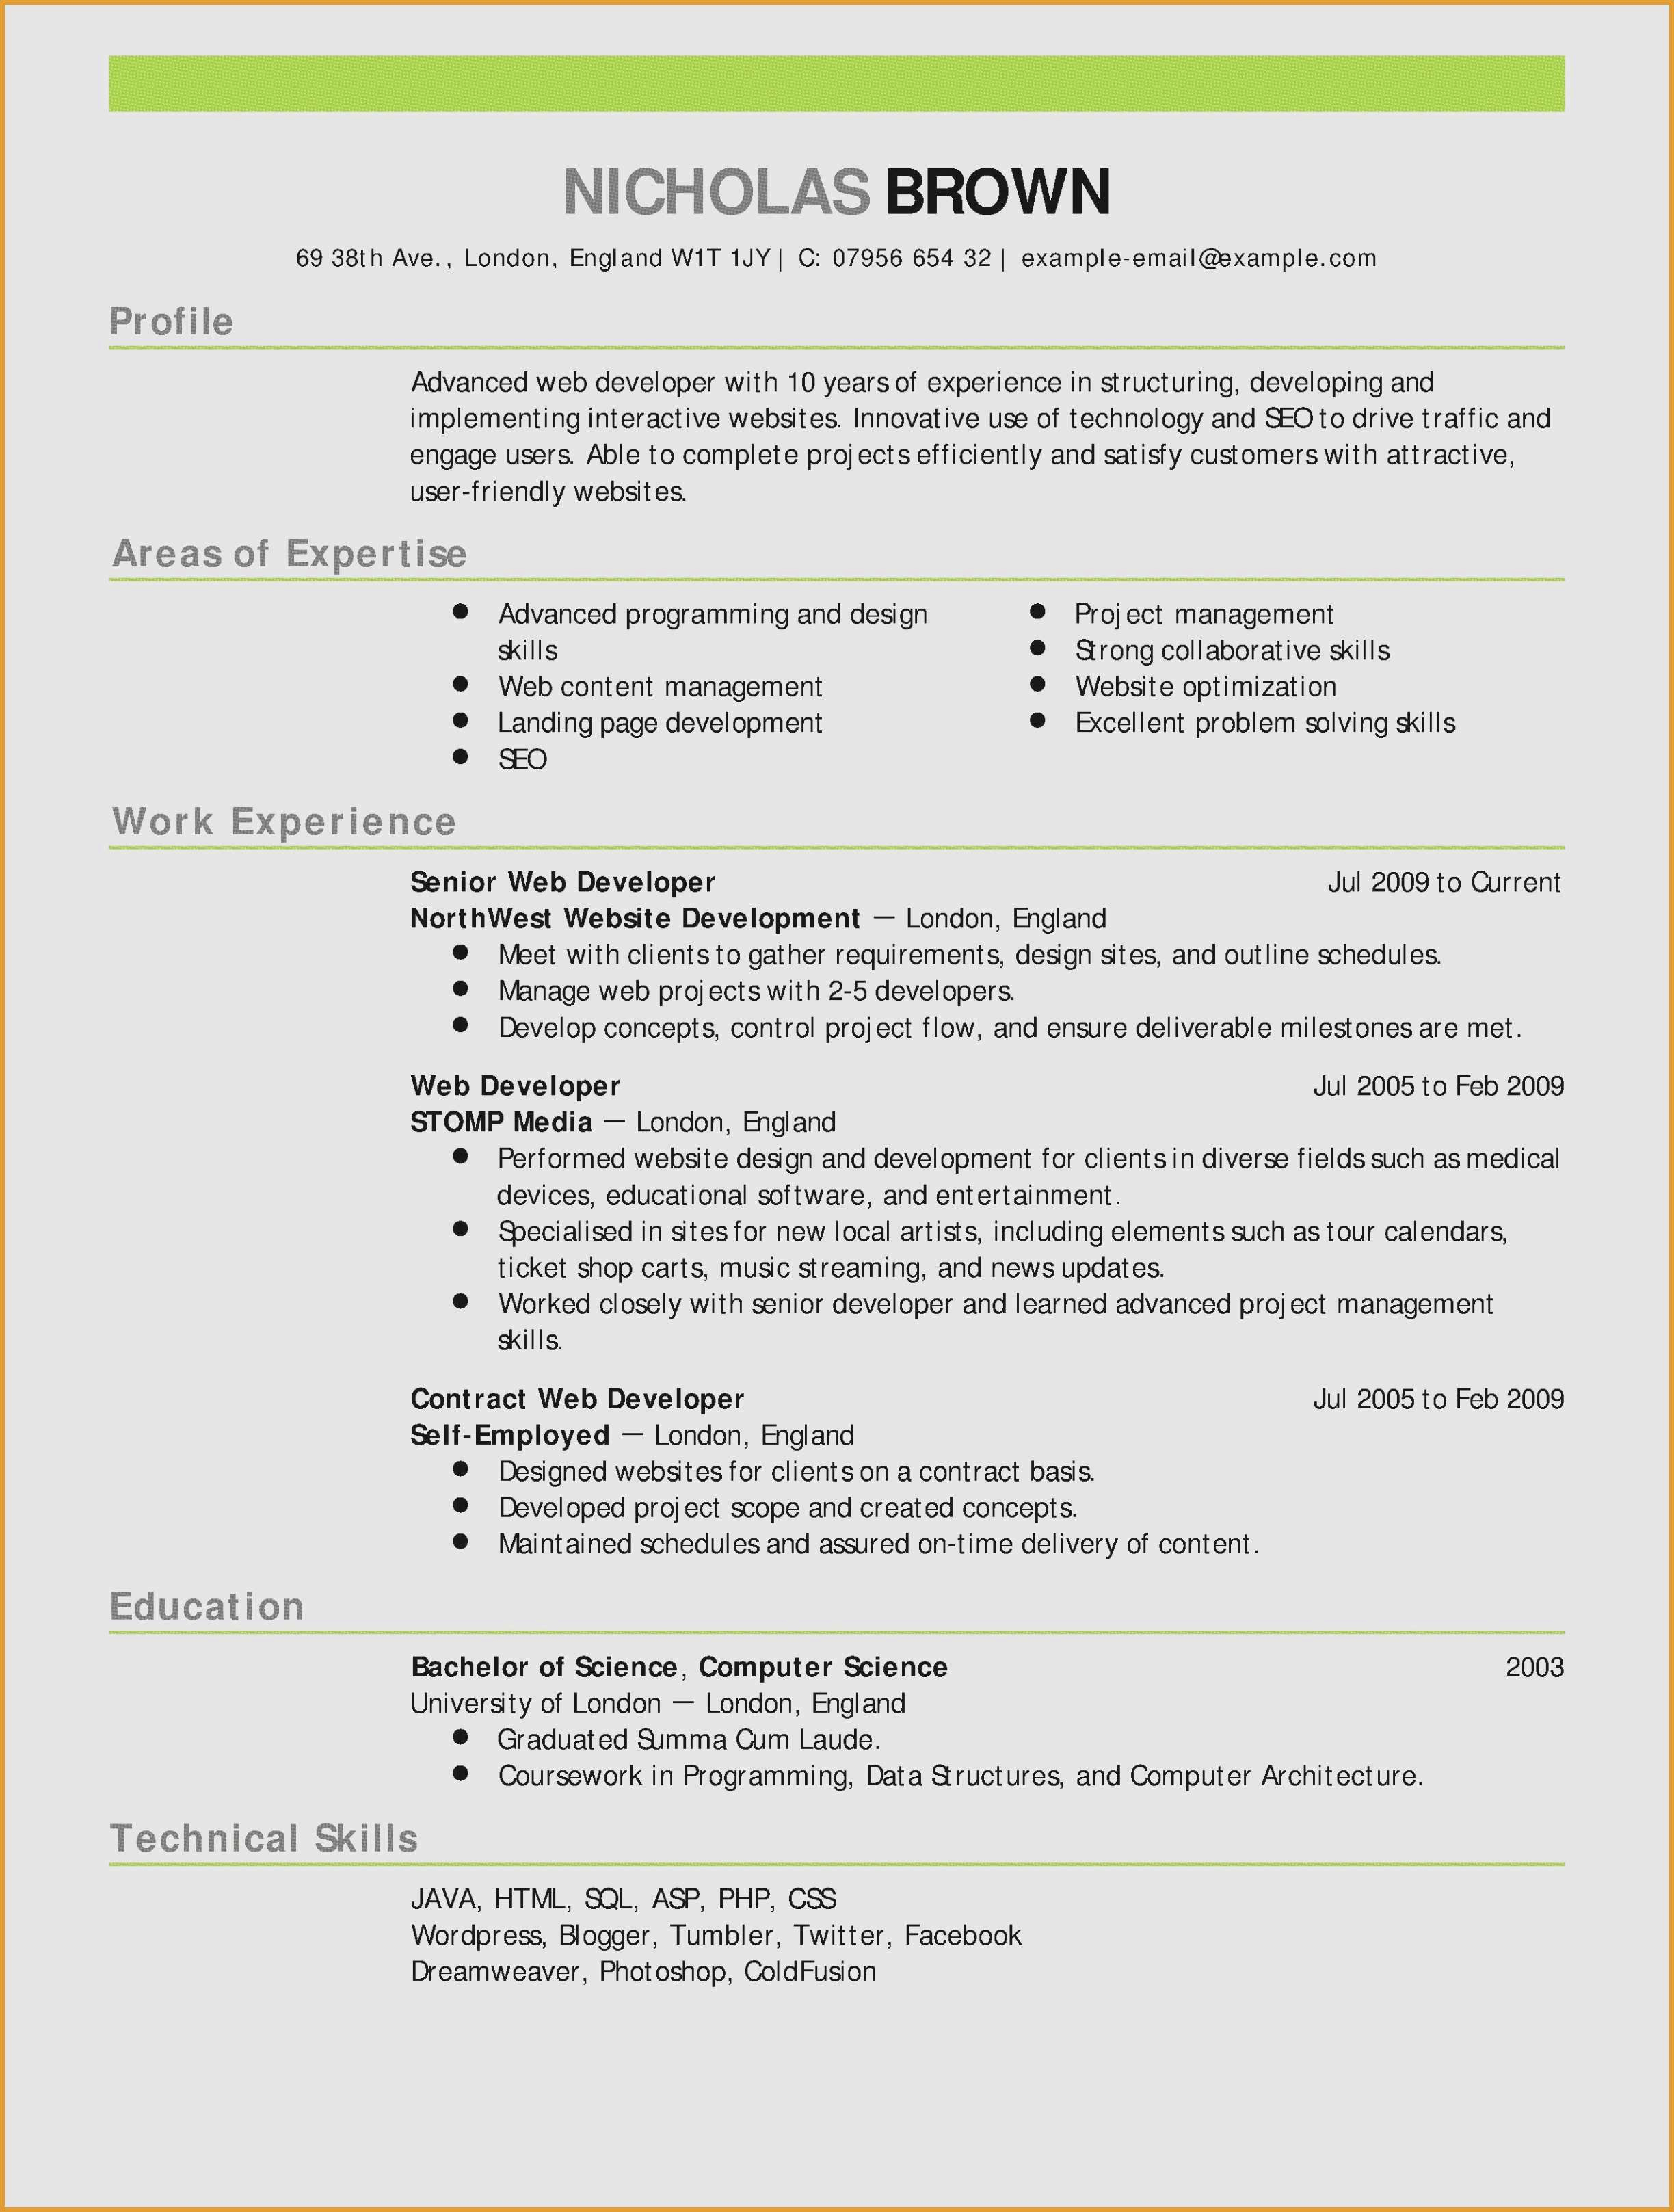 Skills and Interests On Resume - Resume for A Server Server Skills Resume Fresh Skills for A Resume